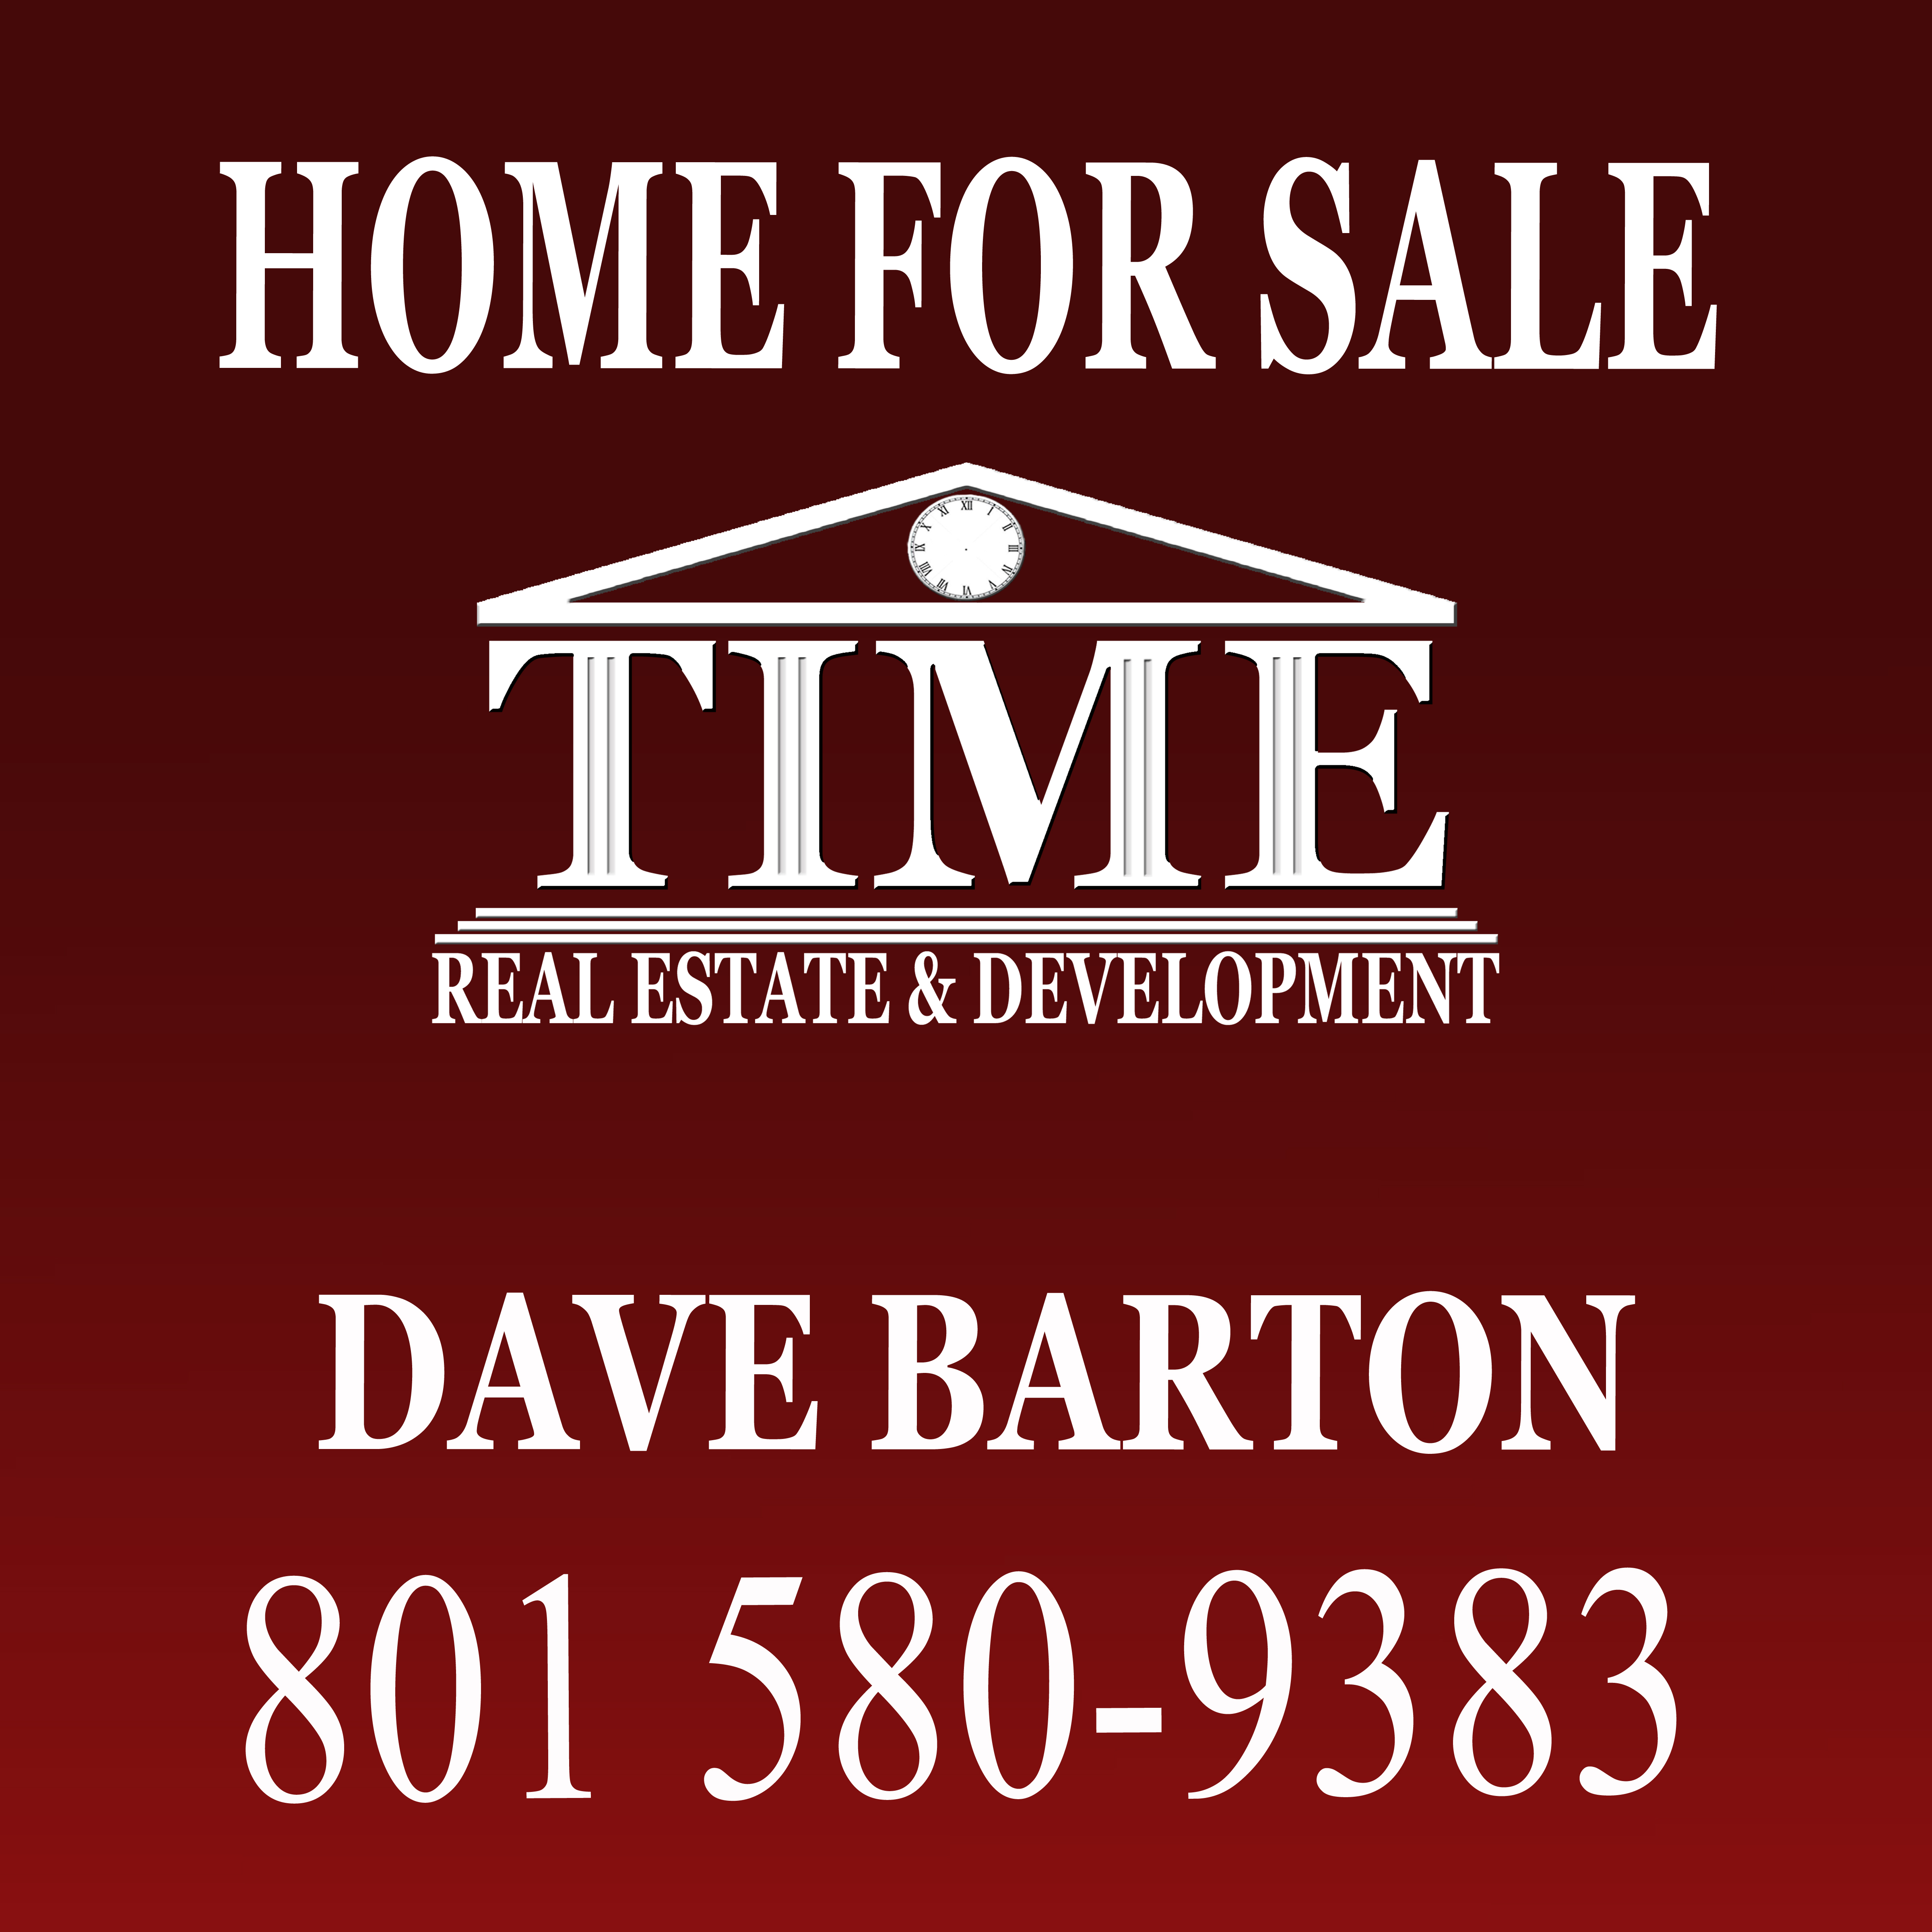 Time For Sale Sign 24X24-Light-9-16-2014